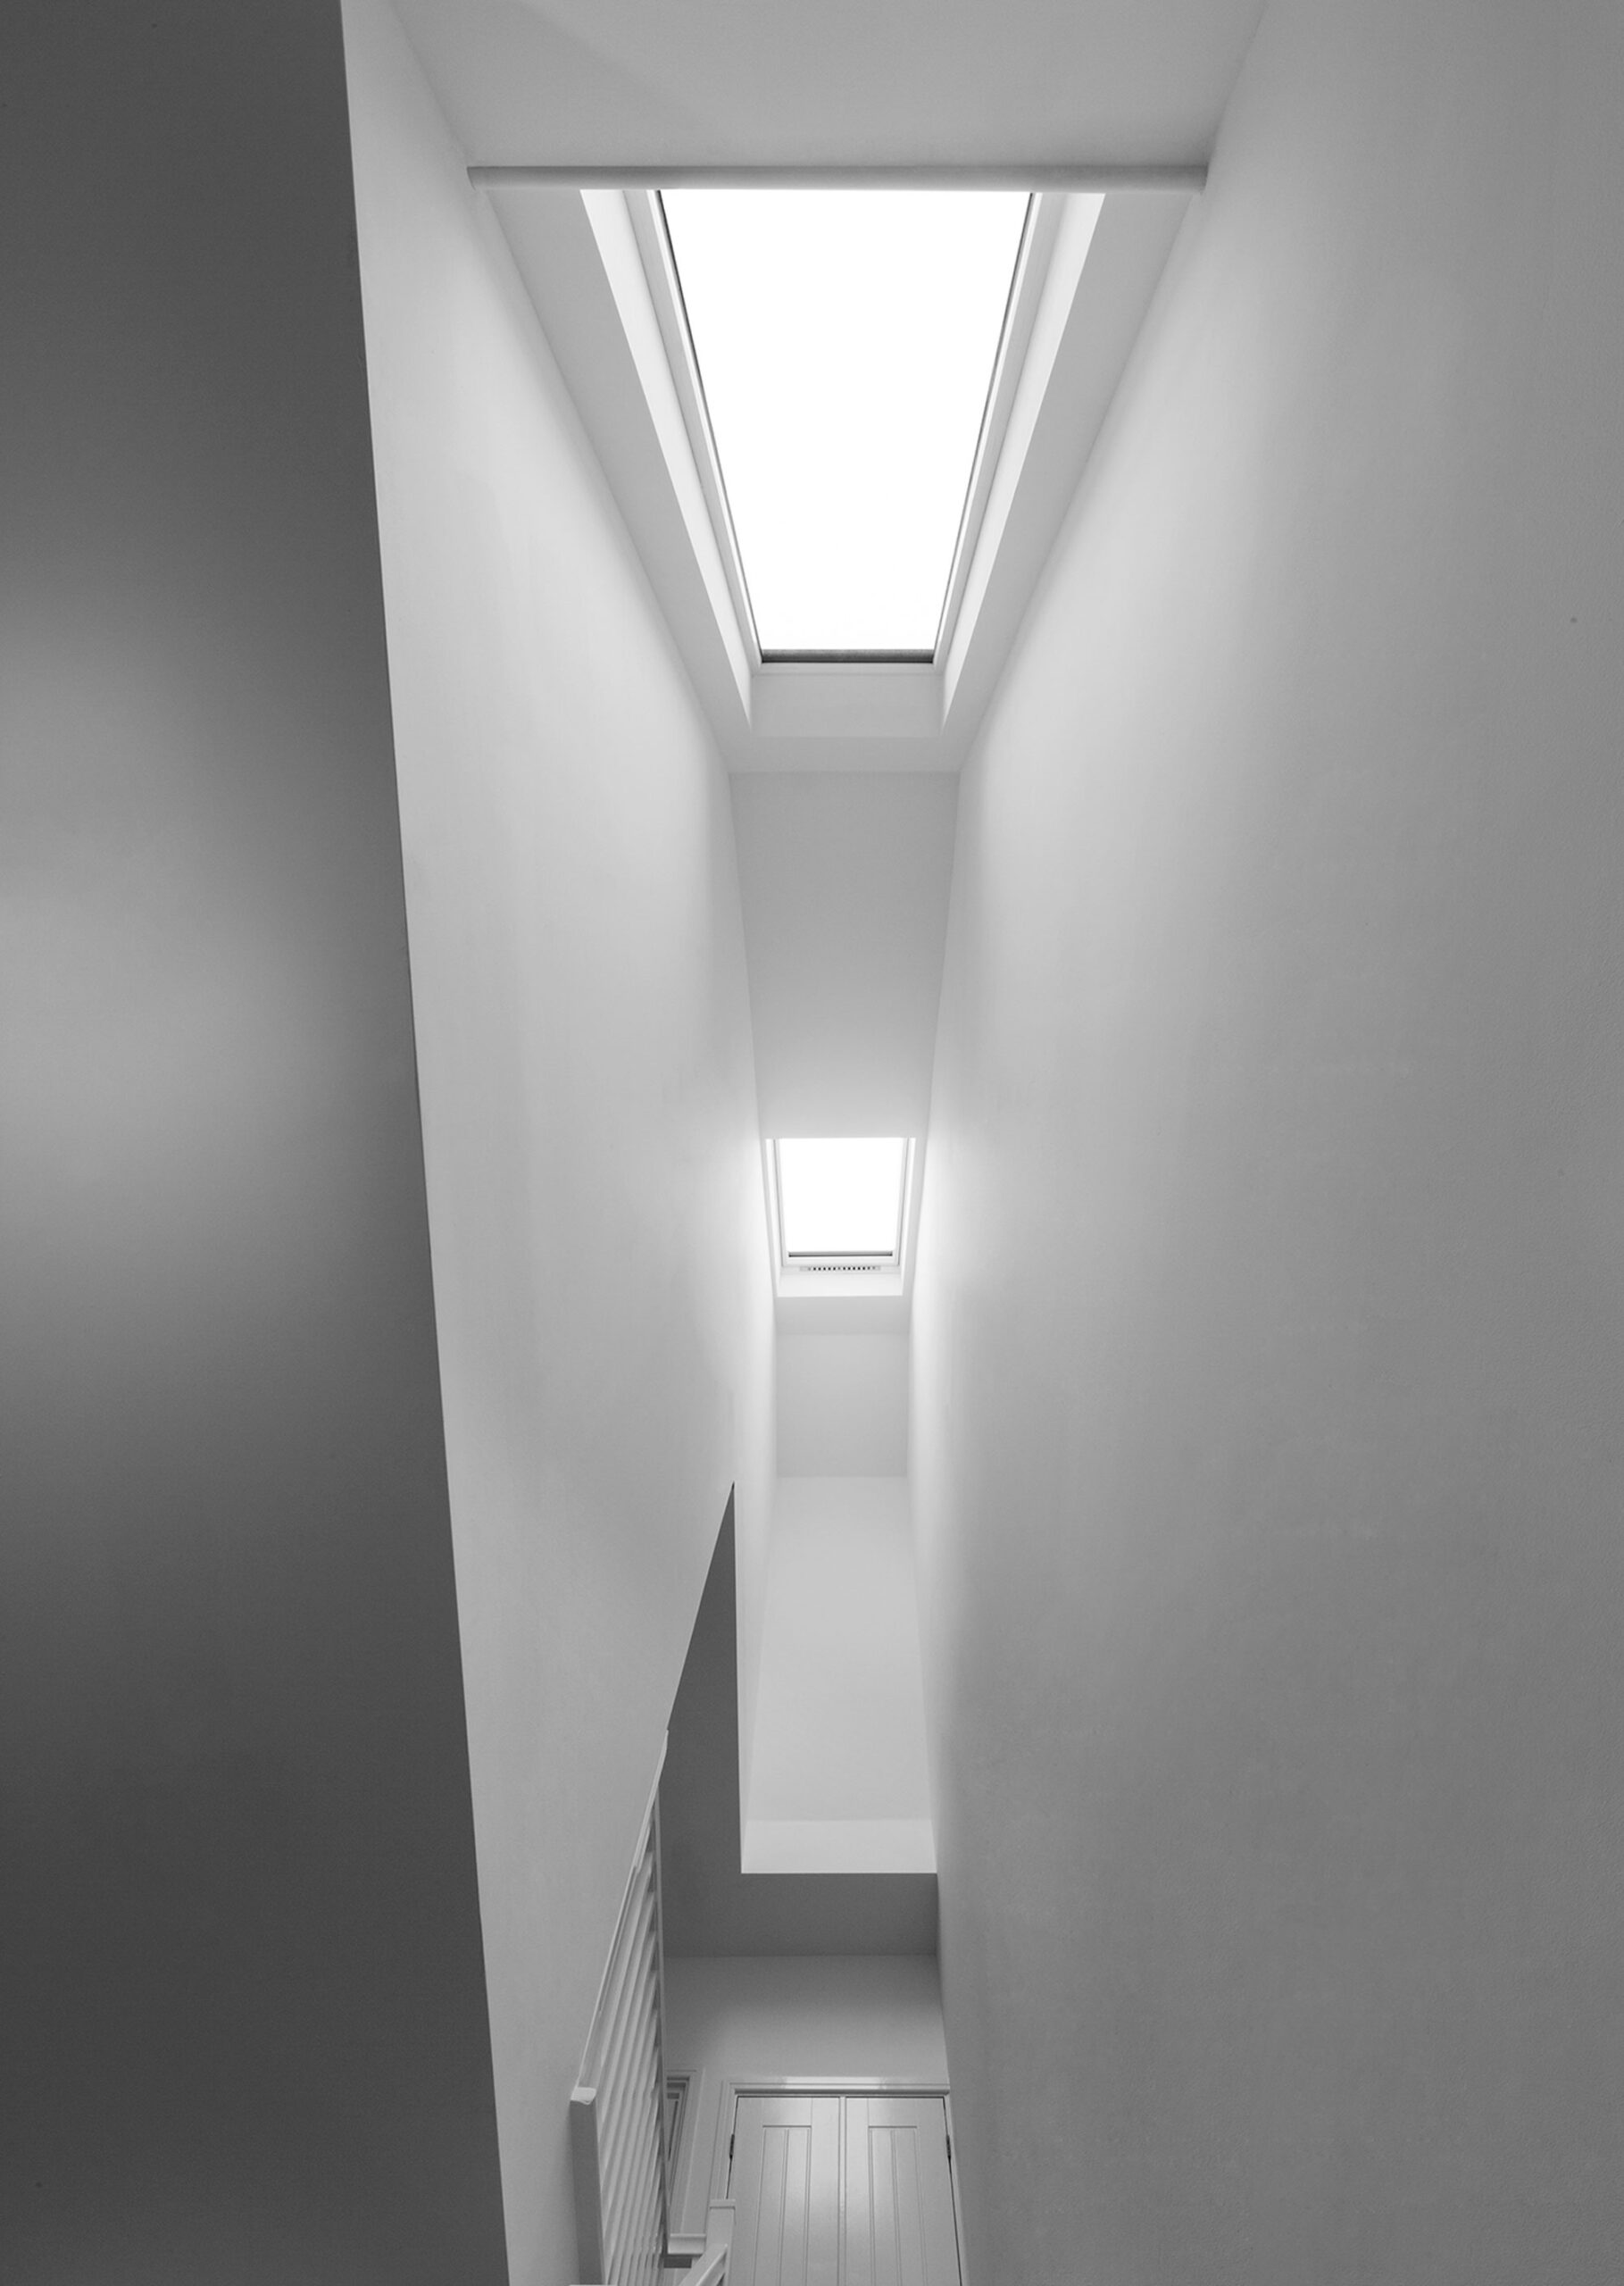 taylor-wimpey-openstudio-architects-staircase